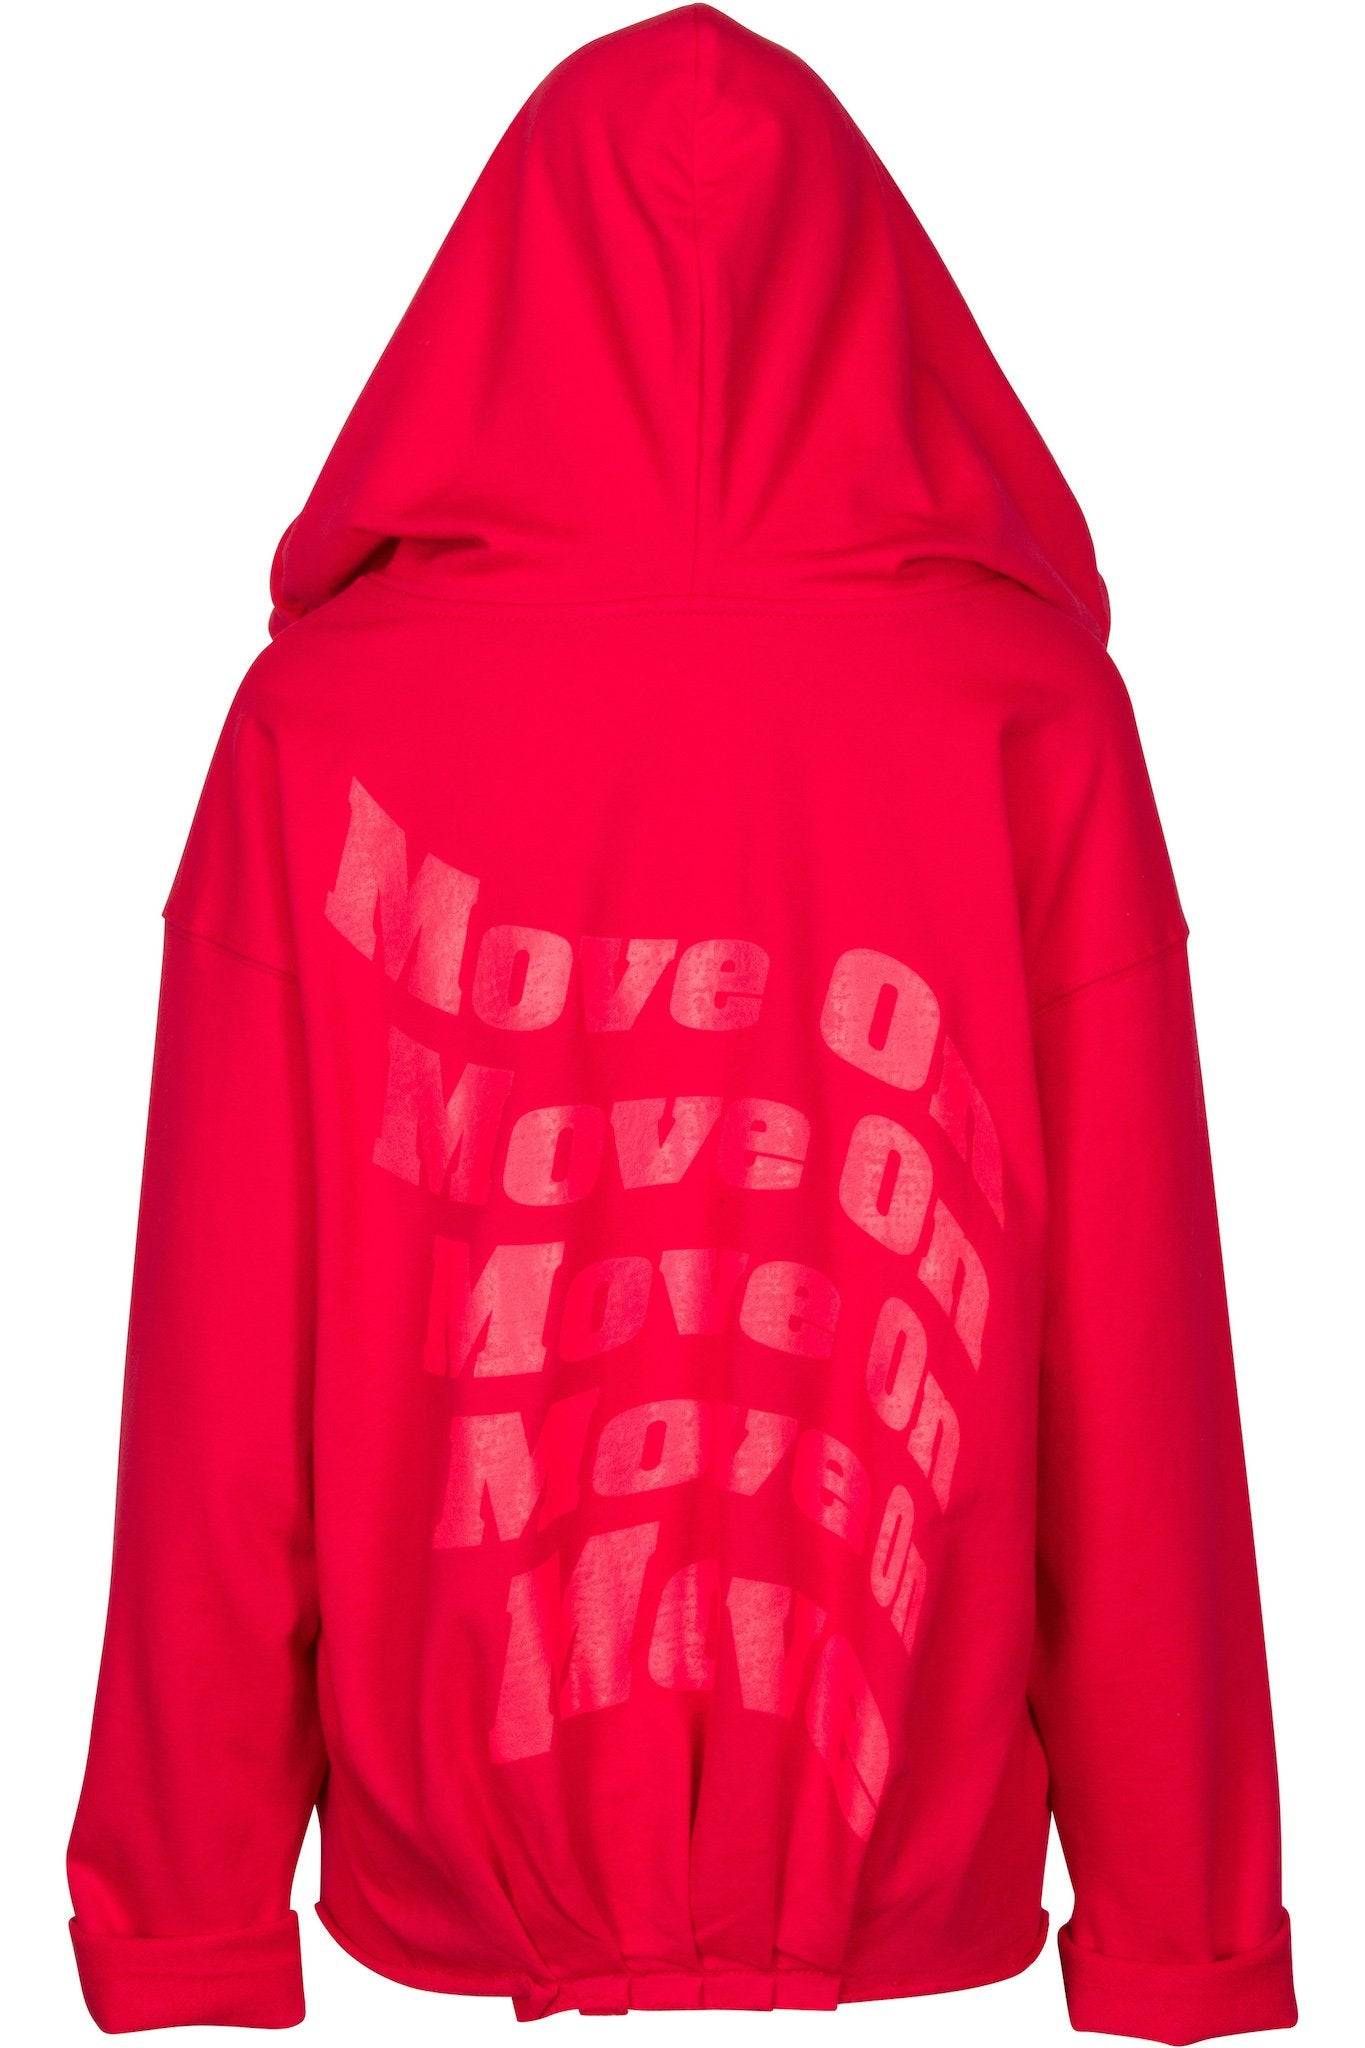 MOVE ON OVERSIZED HOODIE